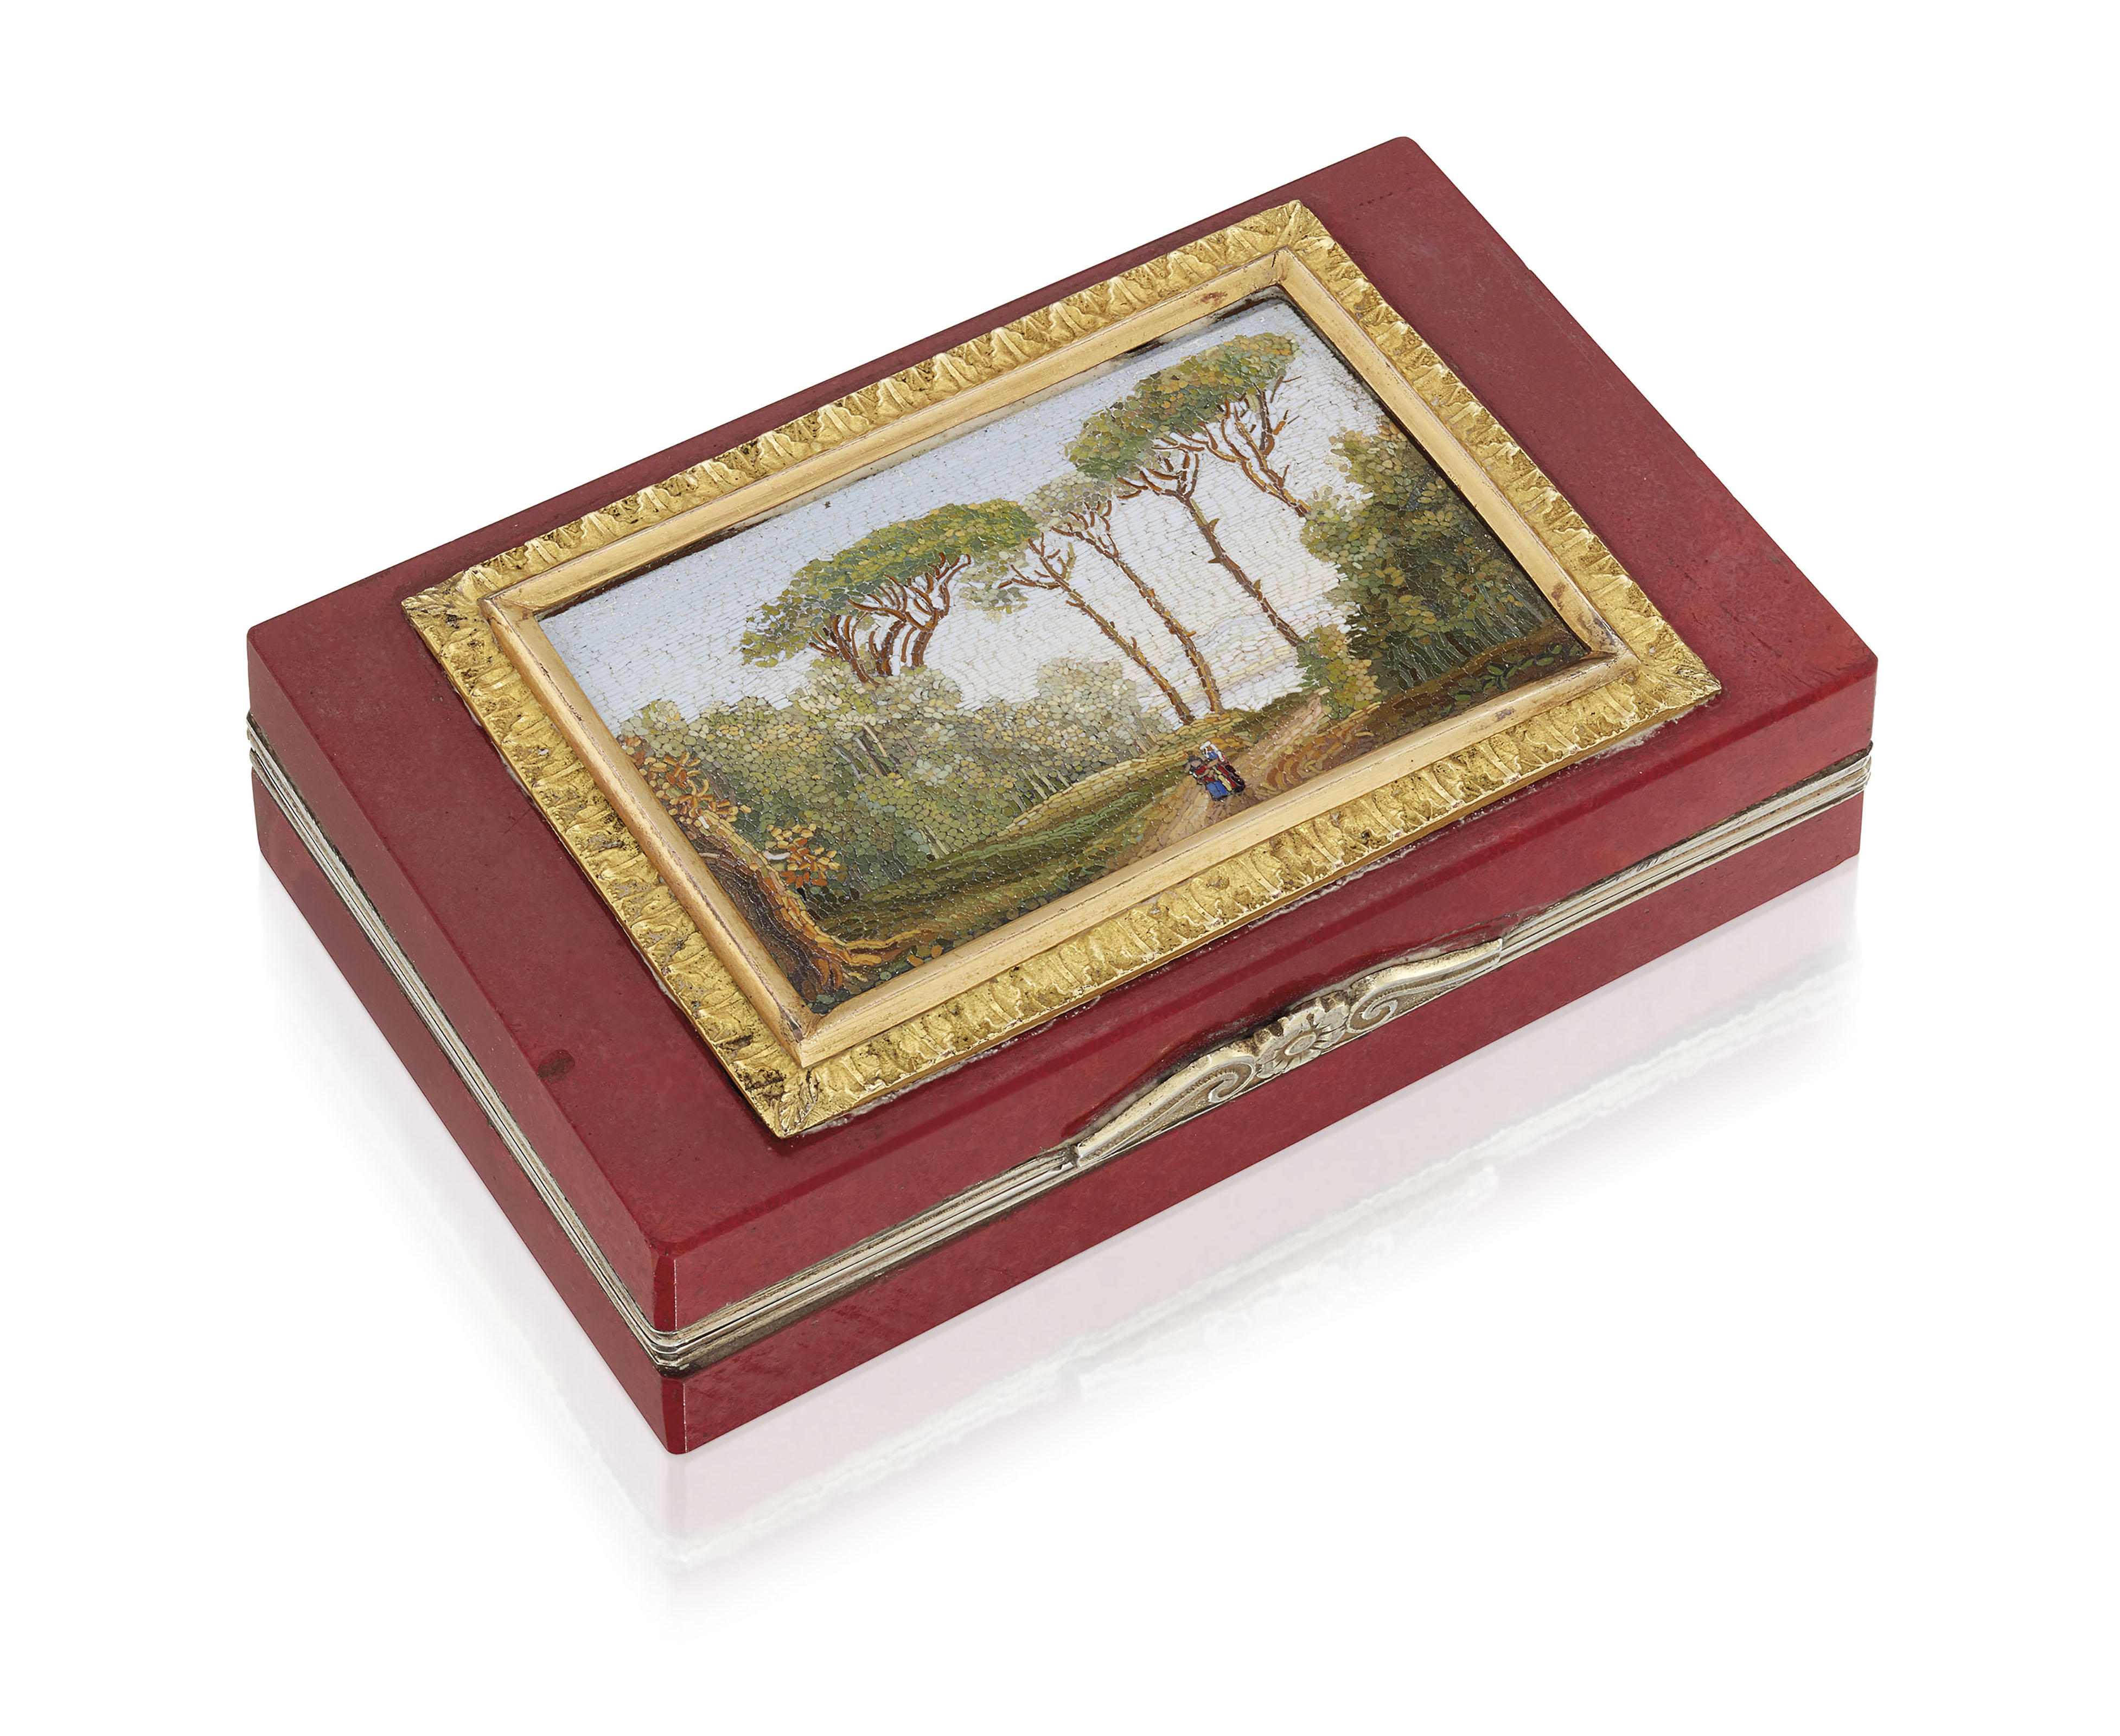 AN ITALIAN SILVER-GILT MOUNTED SNUFF-BOX SET WITH A MICROMOSAIC PLAQUE